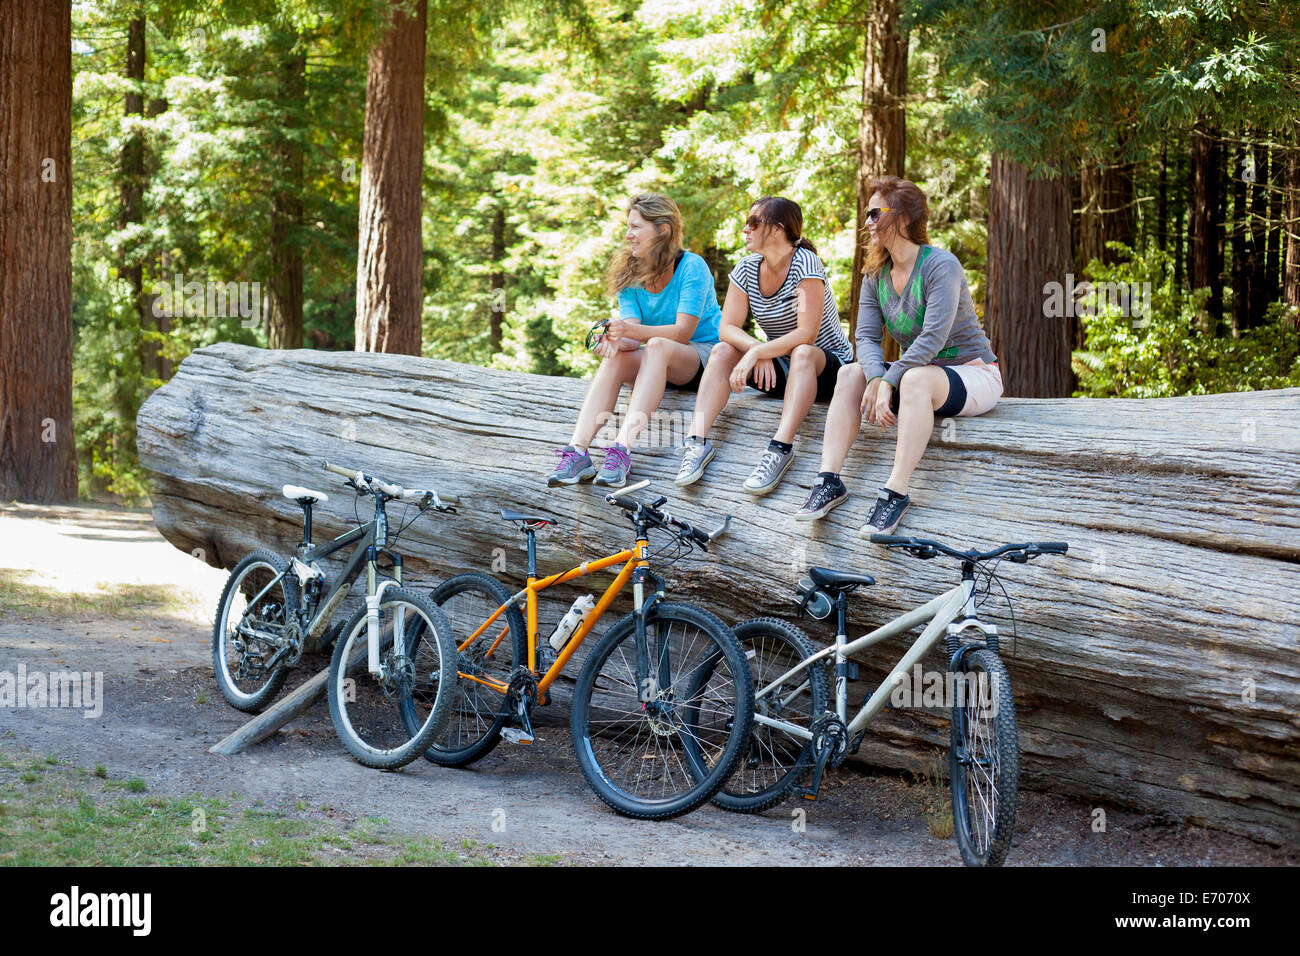 Three women mountain bikers sitting on tree trunk in forest - Stock Image